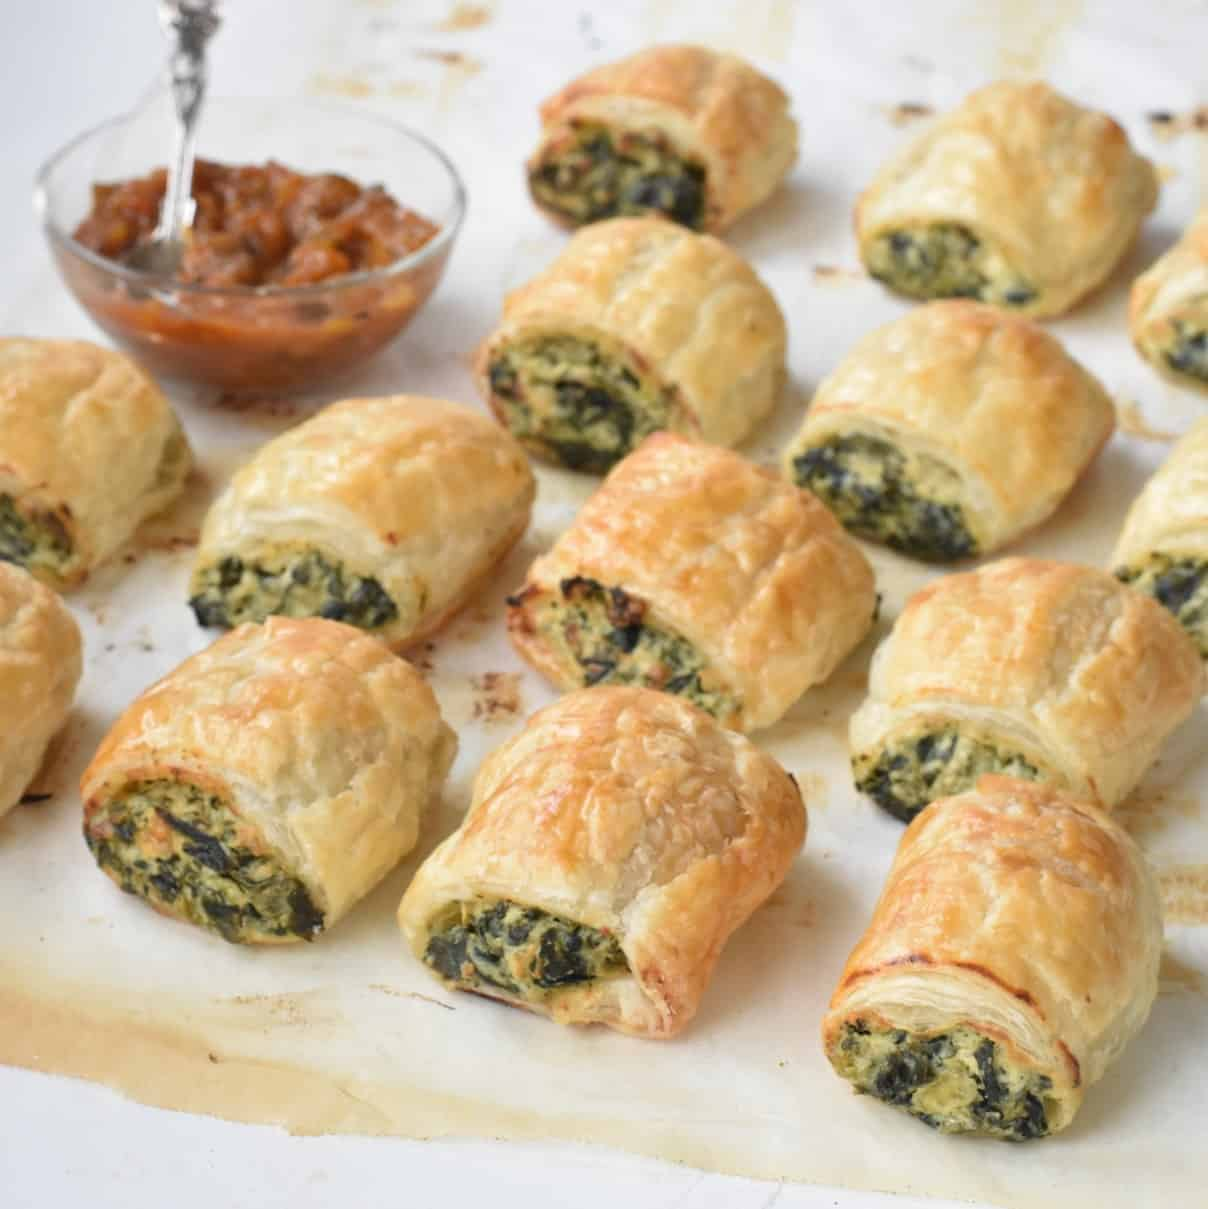 Spinach Ricotta Rolls on a baking tray.